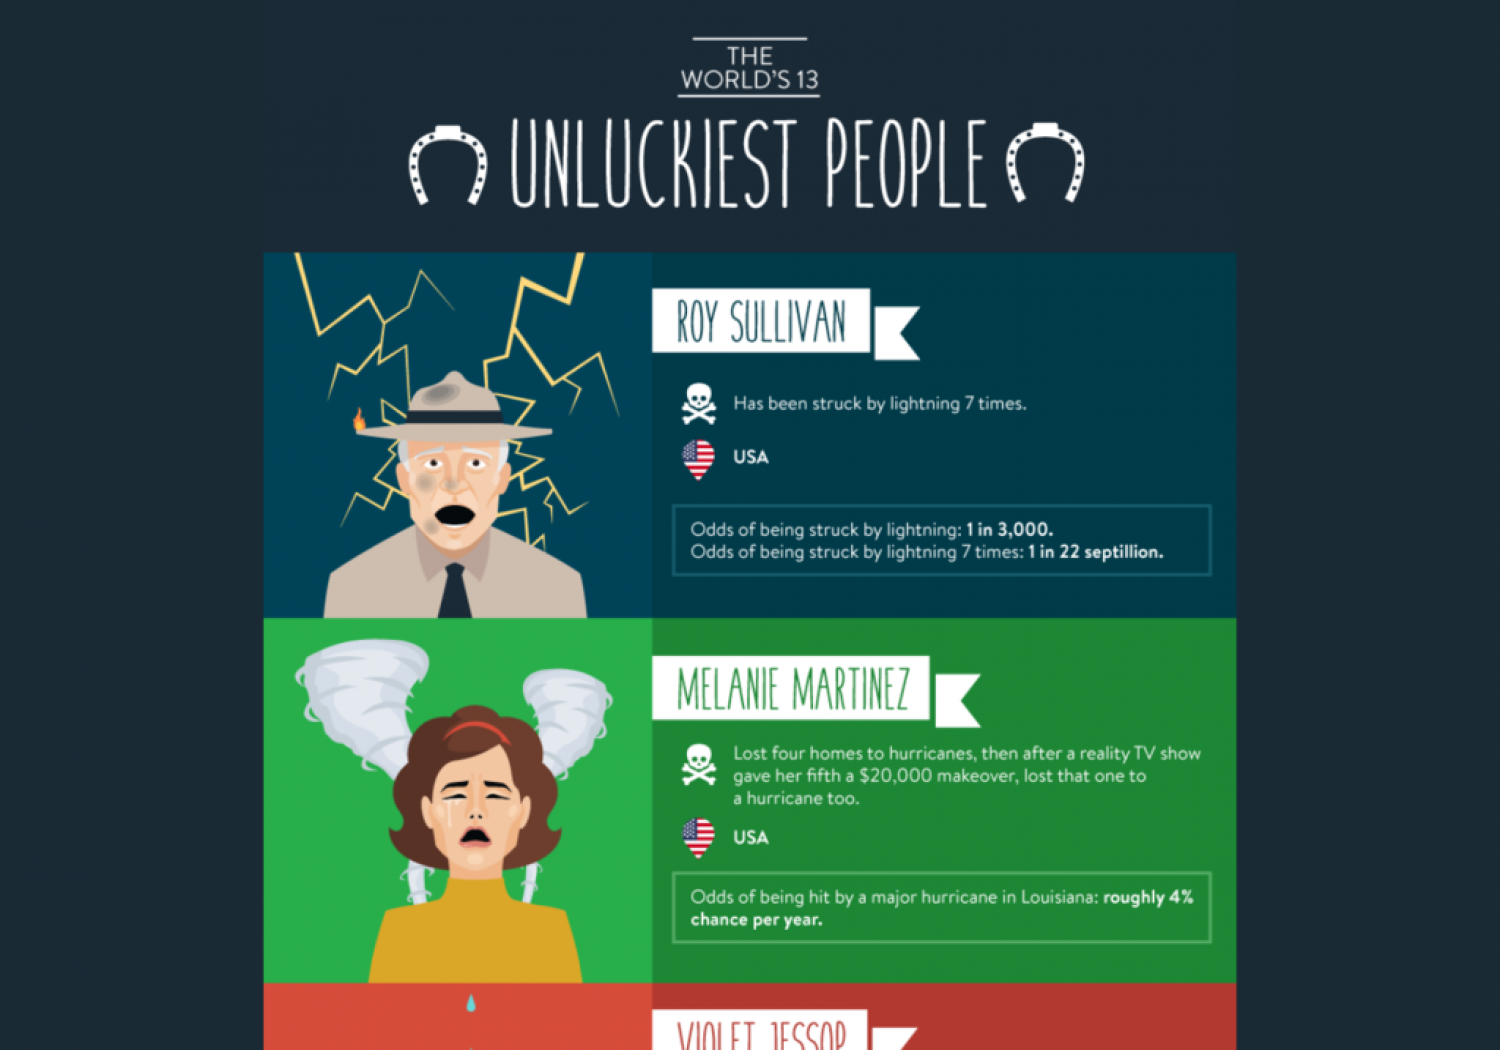 The World's 13 Unluckiest People Infographic